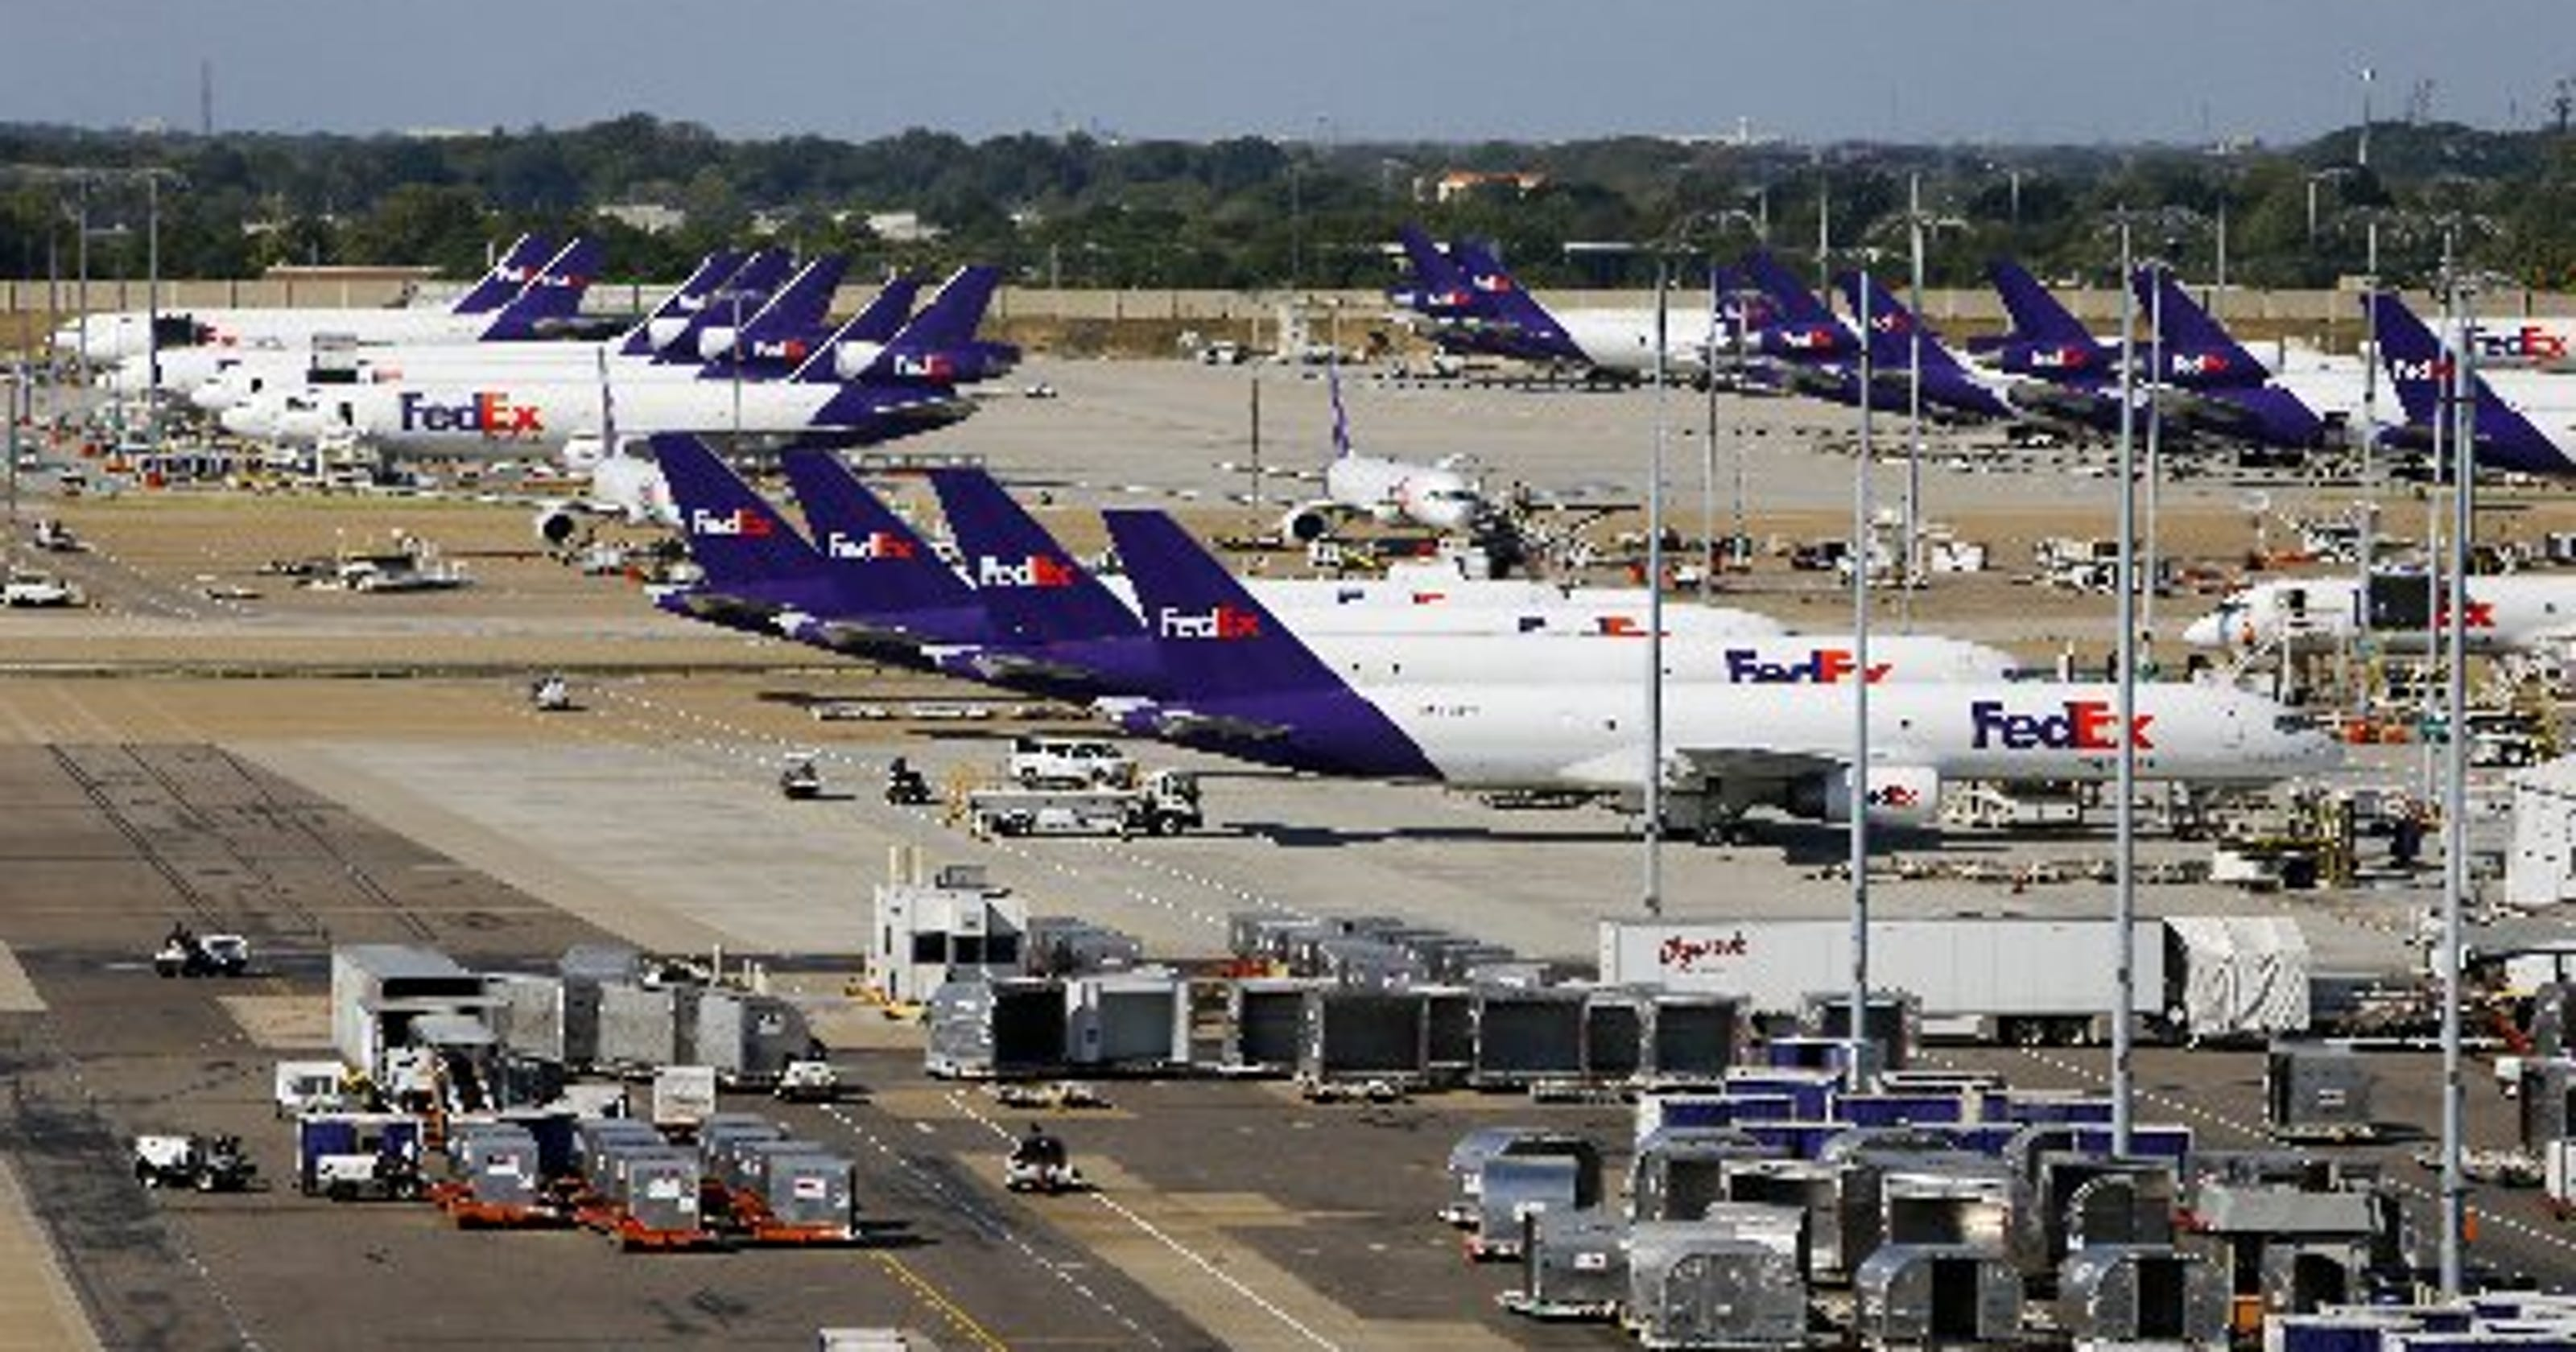 FedEx commits $3 2 billion for pay increases, pensions and expansions